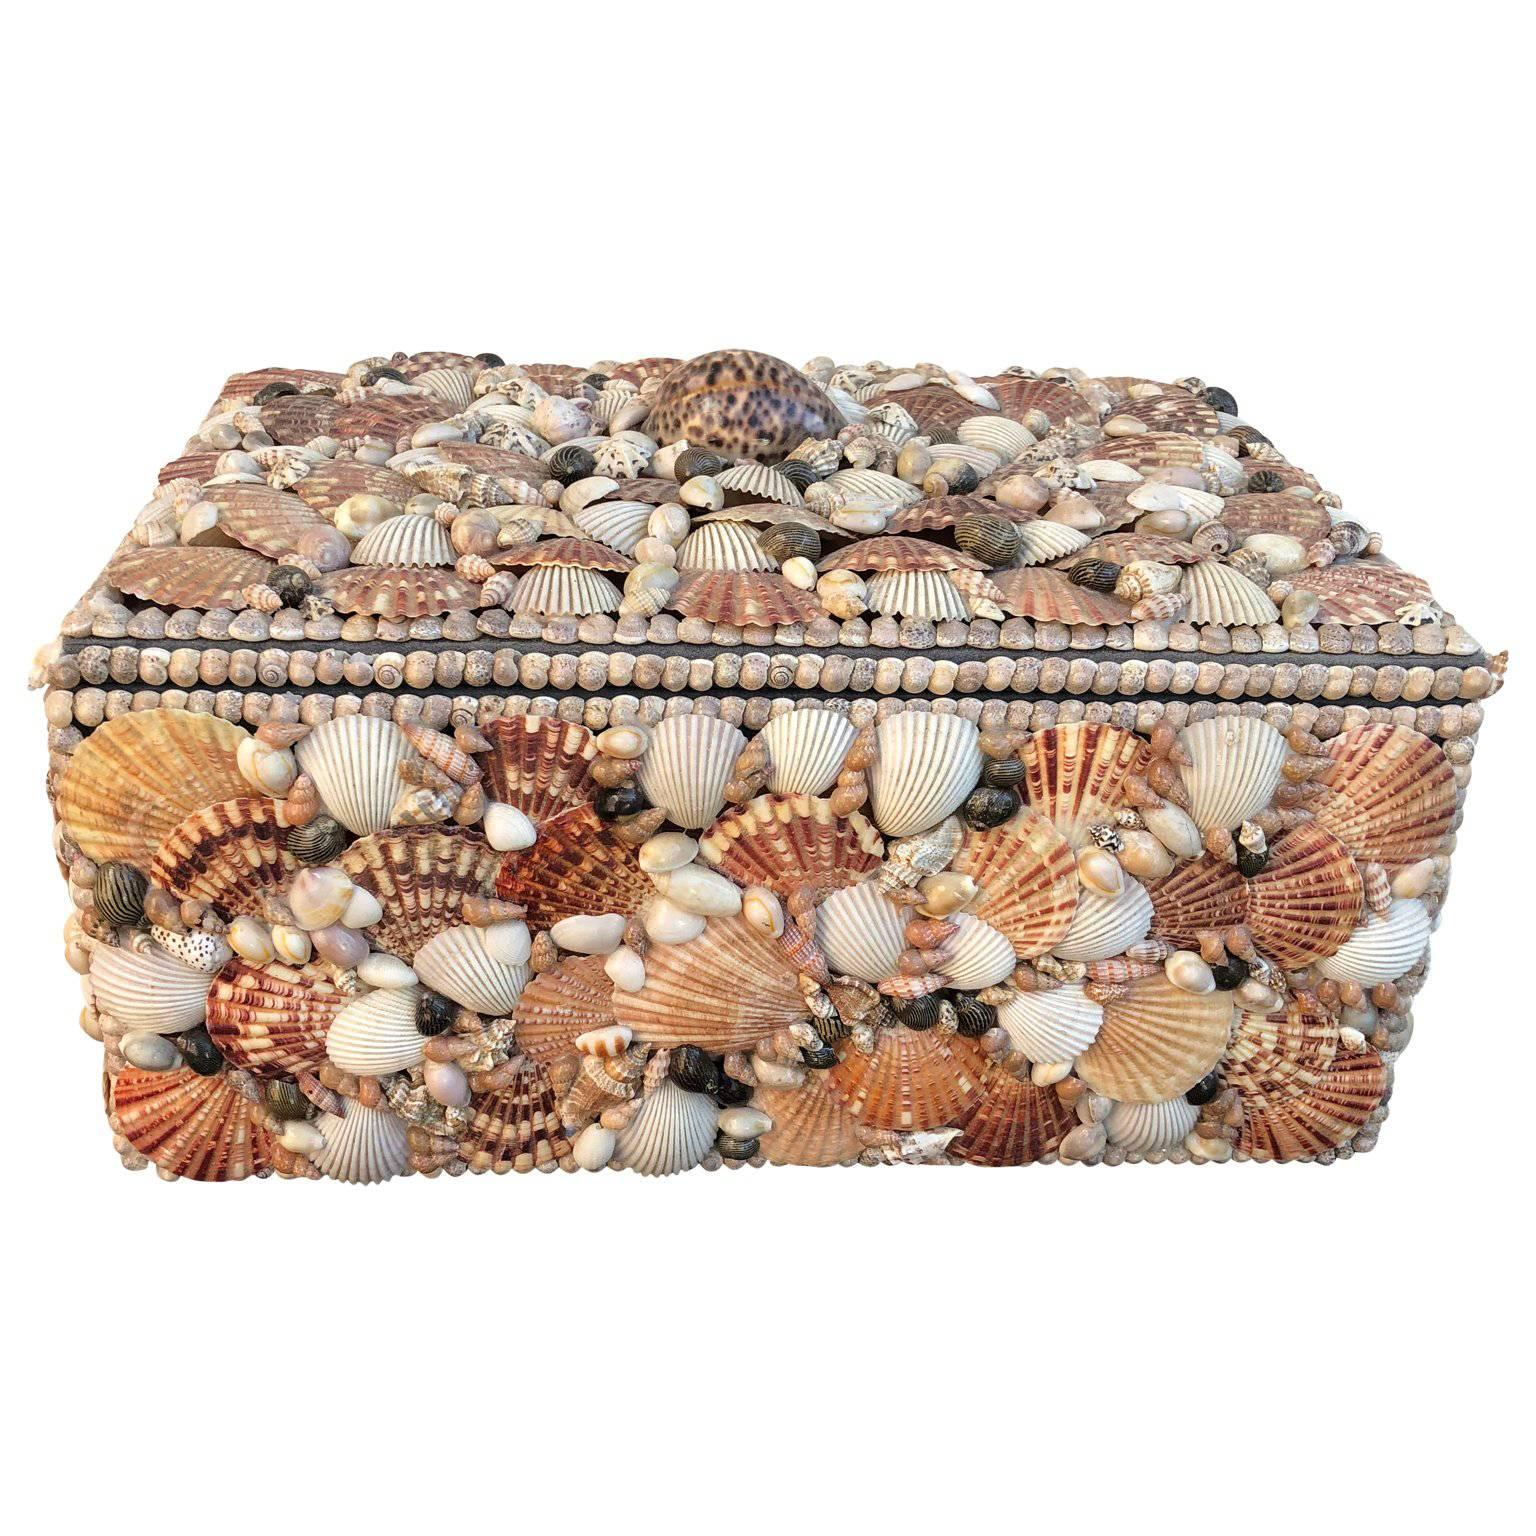 Vintage Jewelry Box Covered Pacific Seashell at 1stdibs